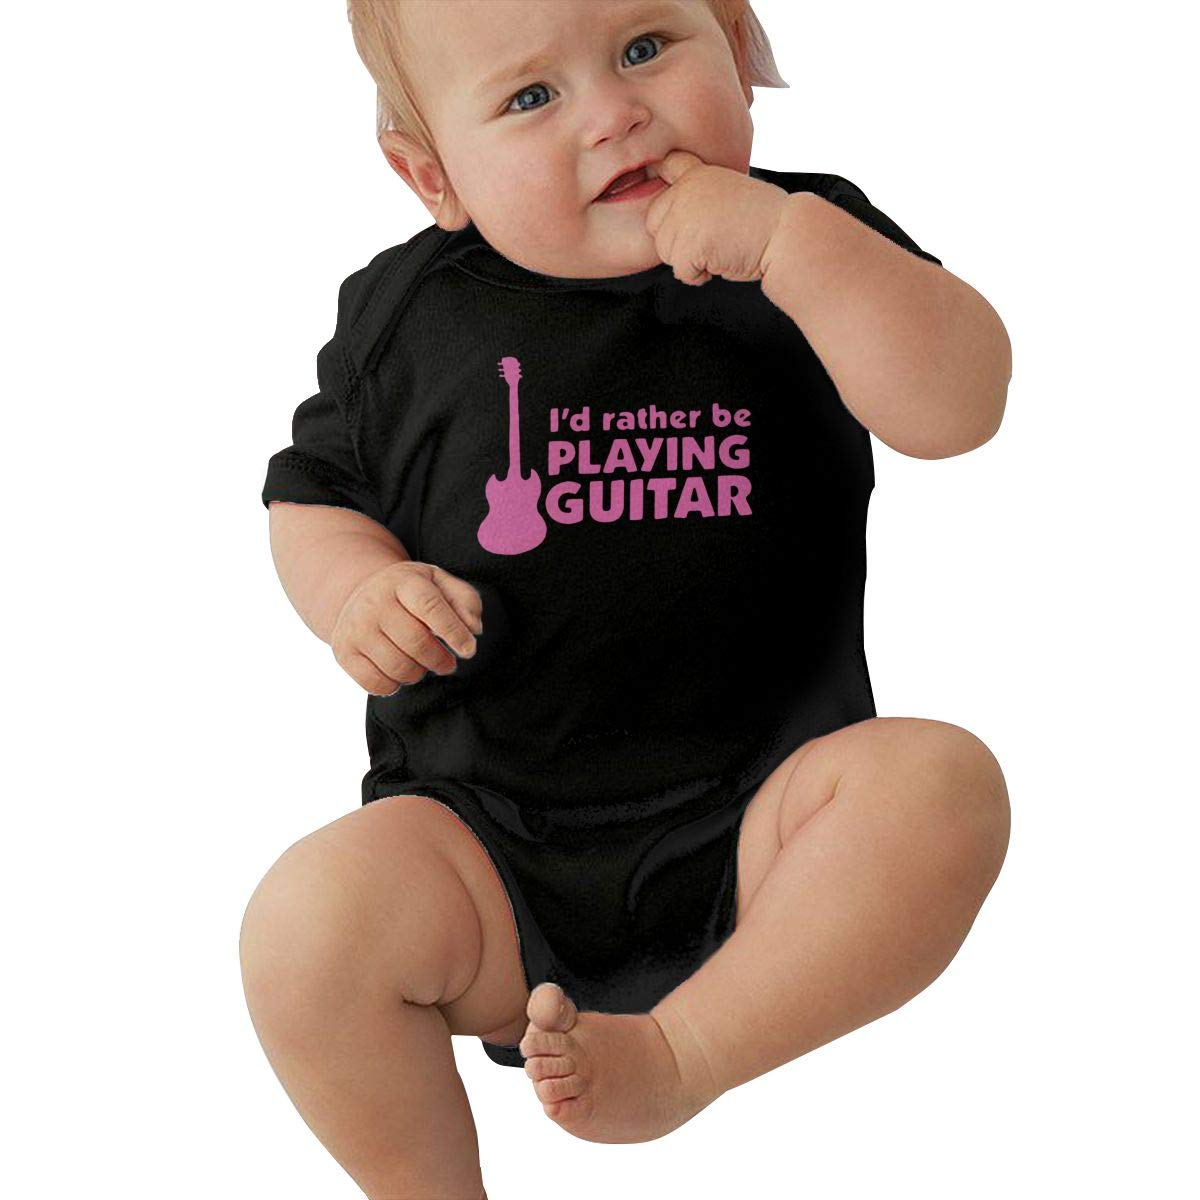 Id Rather Be Playing Guitar Infant Baby Girl Boy Romper Jumpsuit Outfit Short Sleeved Bodysuit Tops Clothes